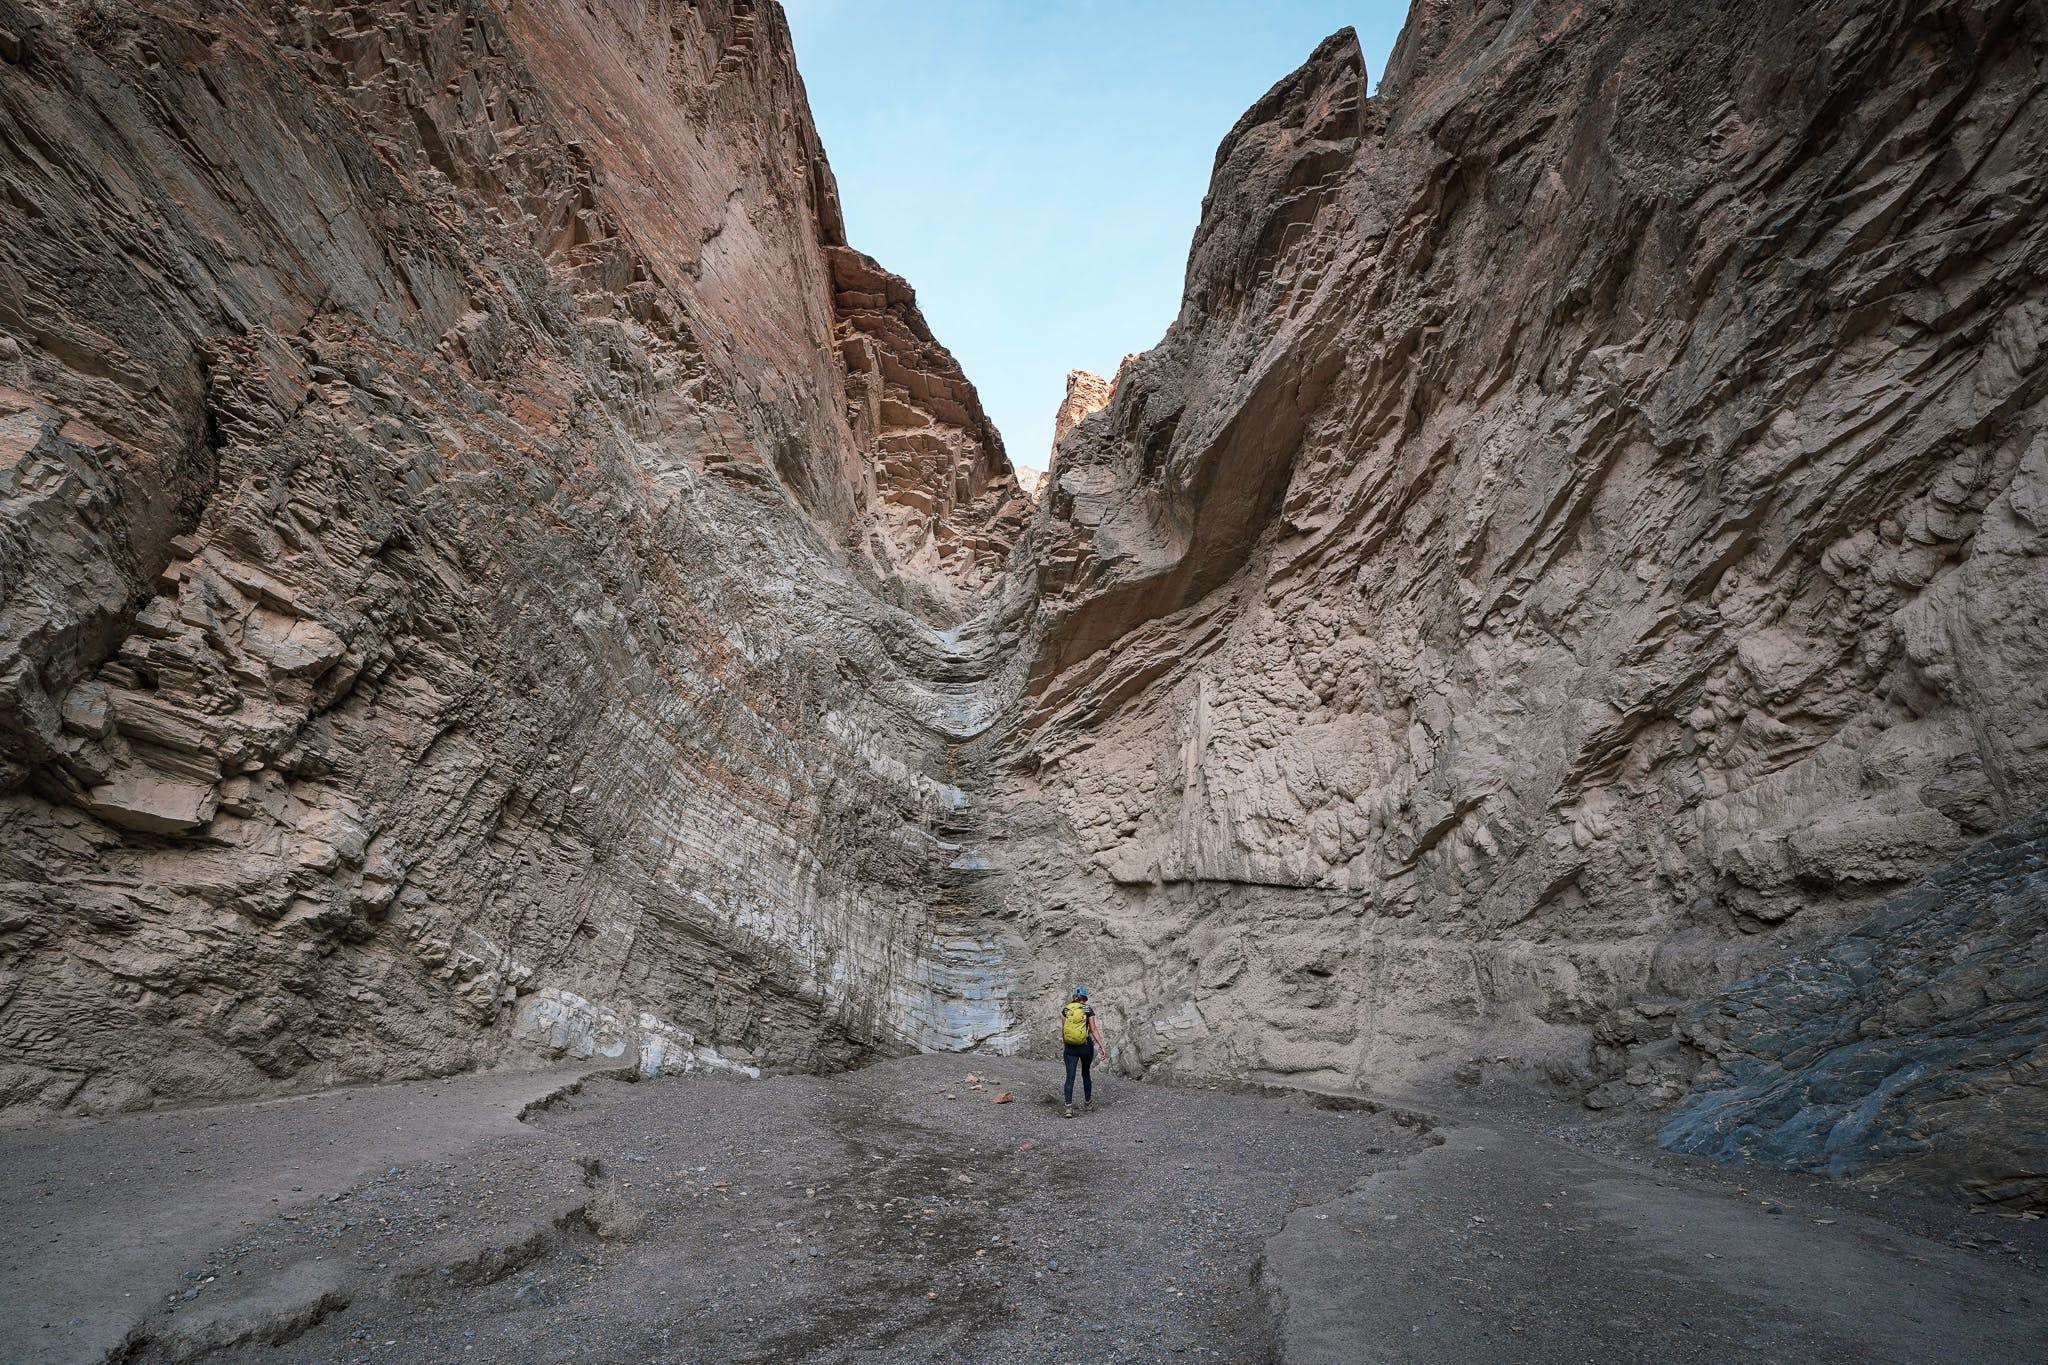 Woman standing at the vertical dryfall in Mosaic Canyon at Death Valley National Park